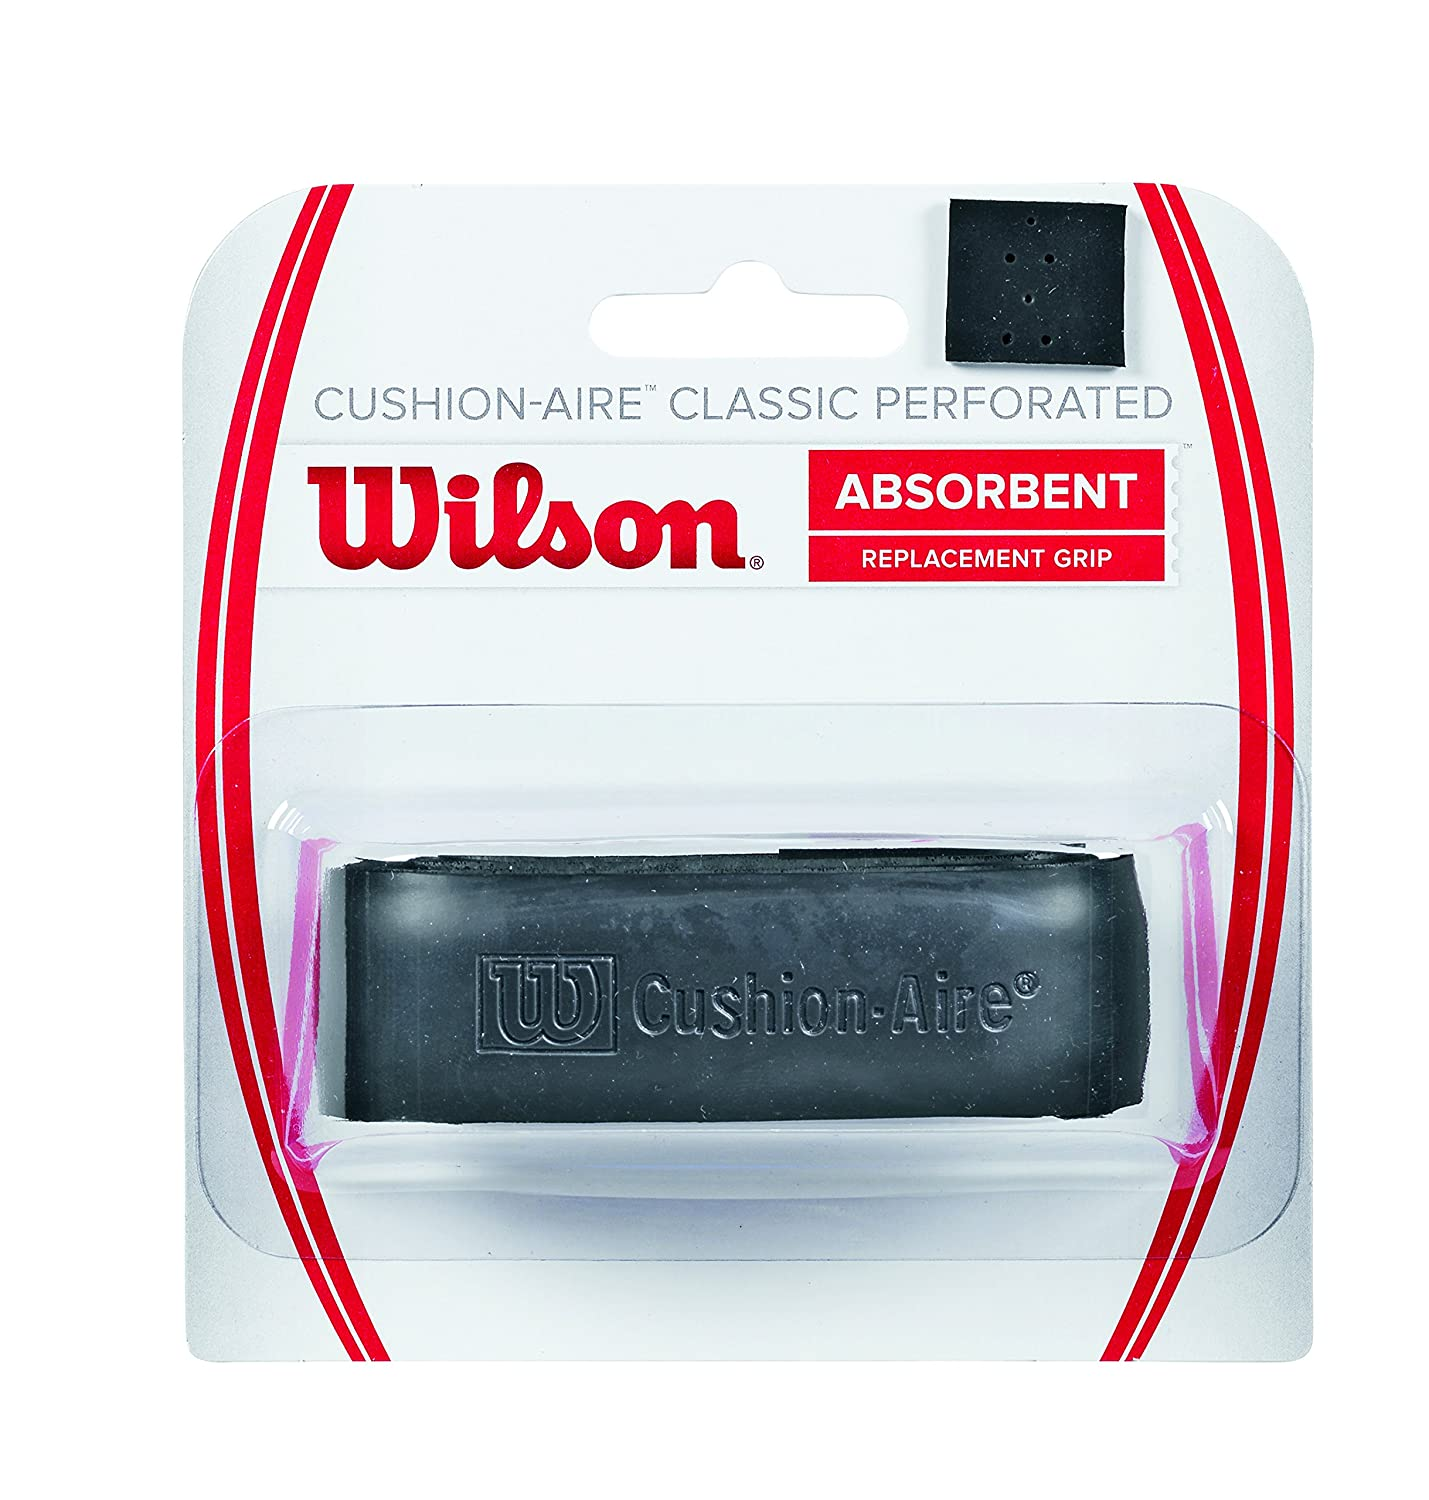 Wilson Griffband Cushion Aire Classic Perforated Grip, Black, WRZ4210BK